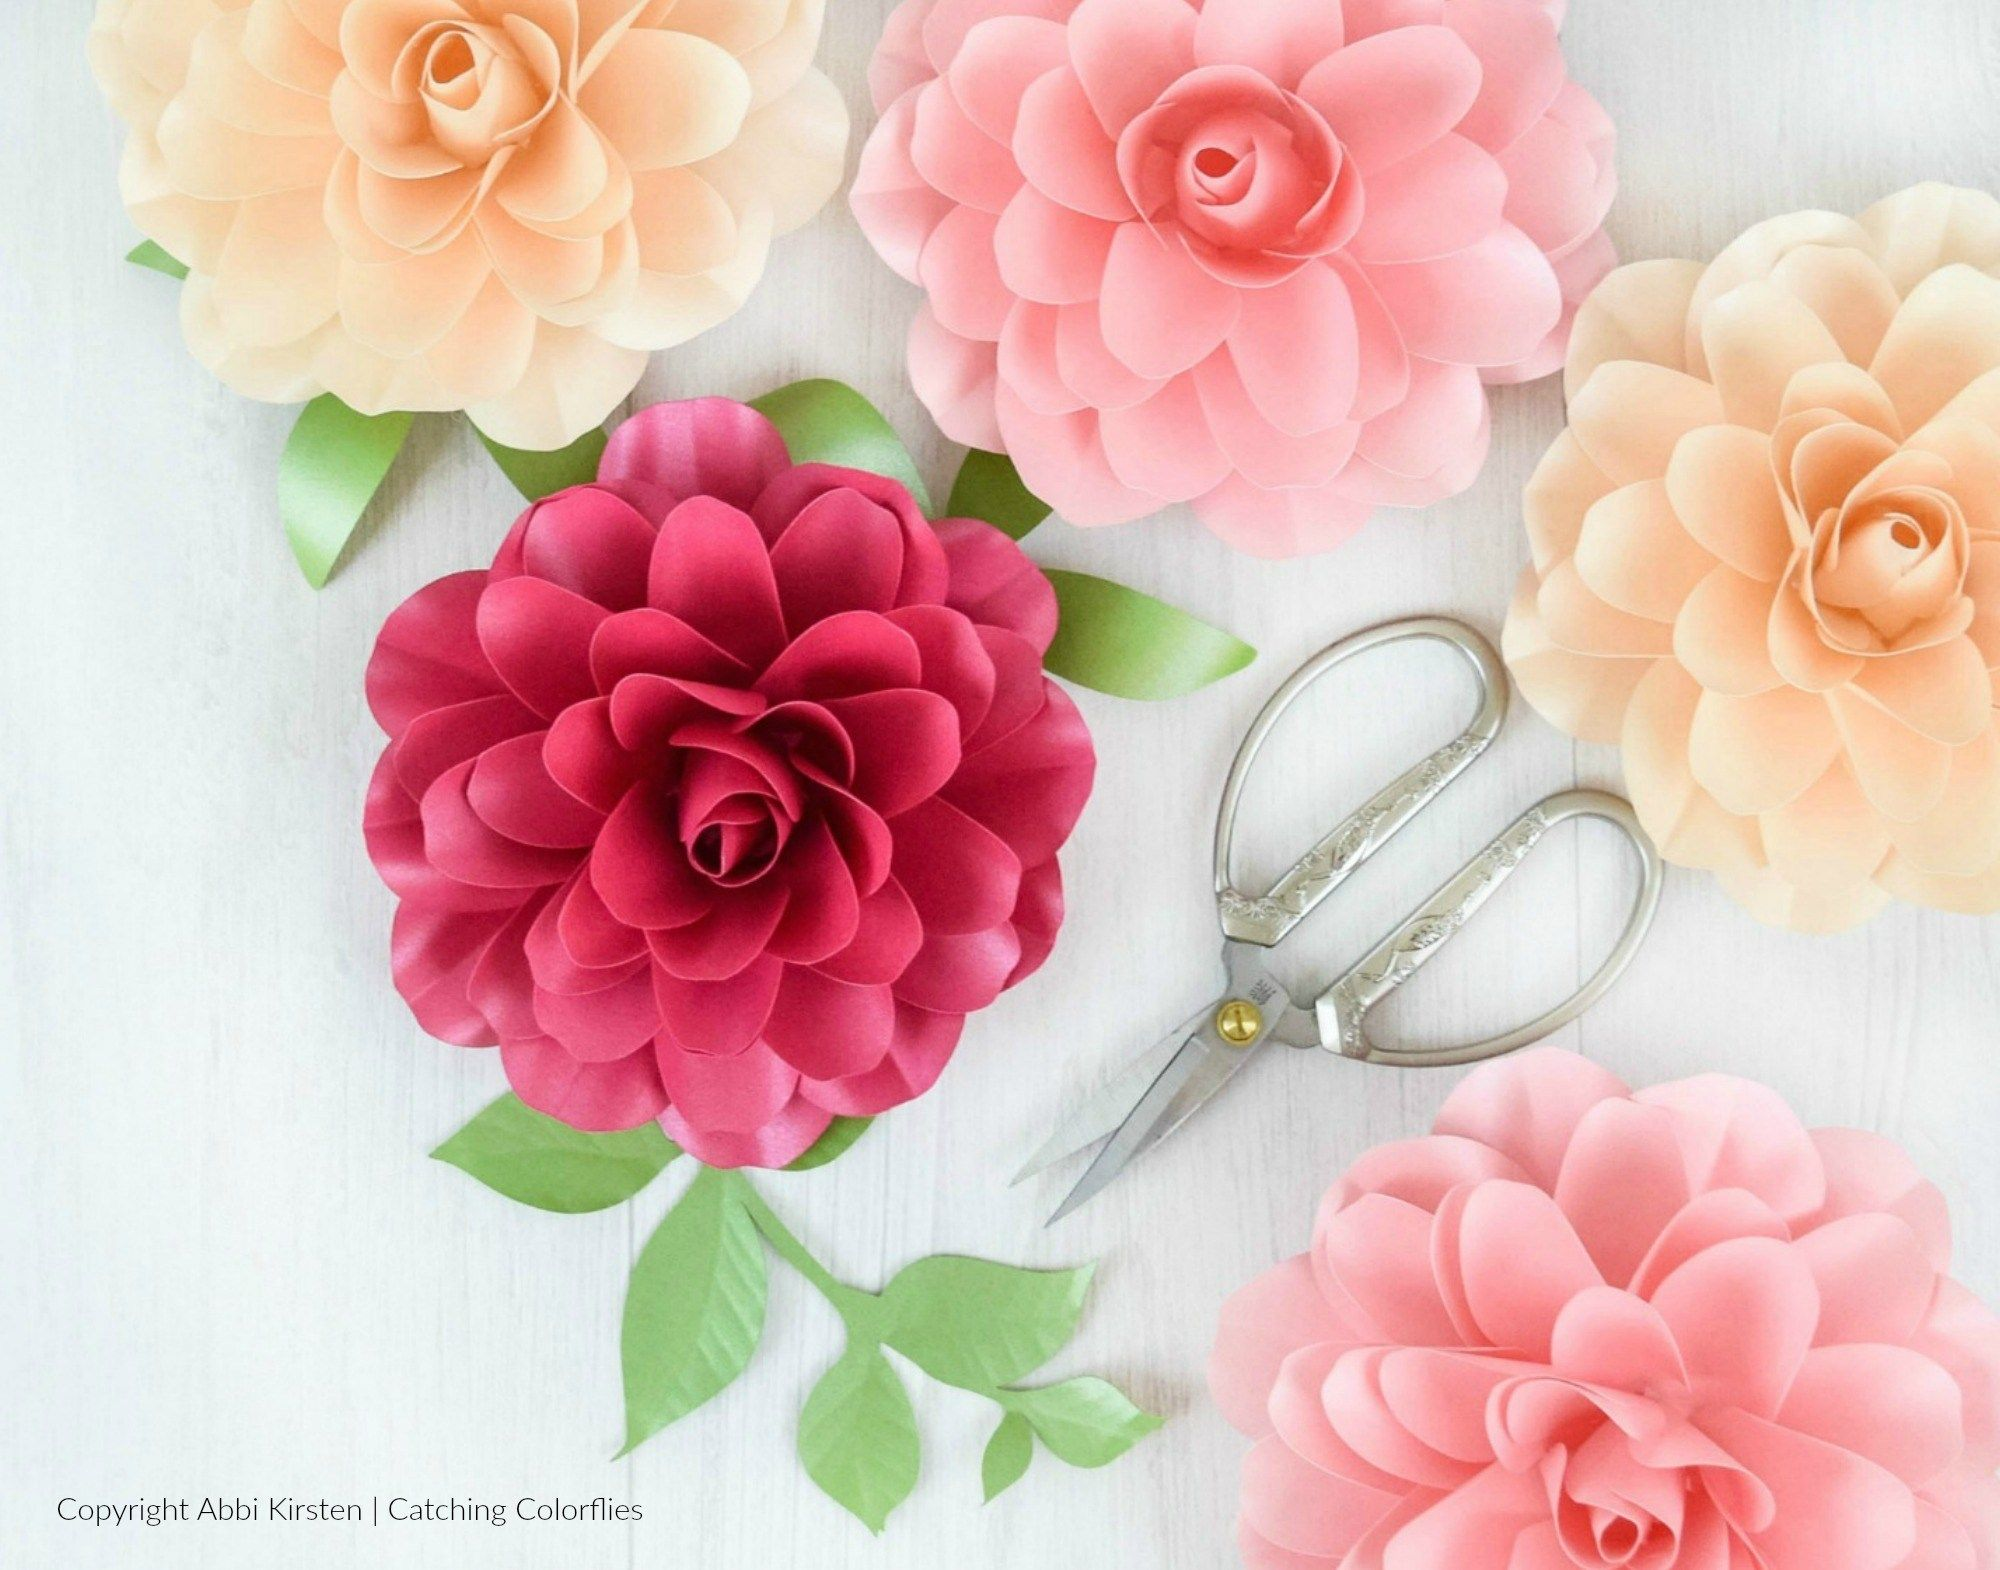 How To Make Small Paper Roses Camellia Rose Template Tutorial Paper Rose Template Paper Roses Paper Flower Template